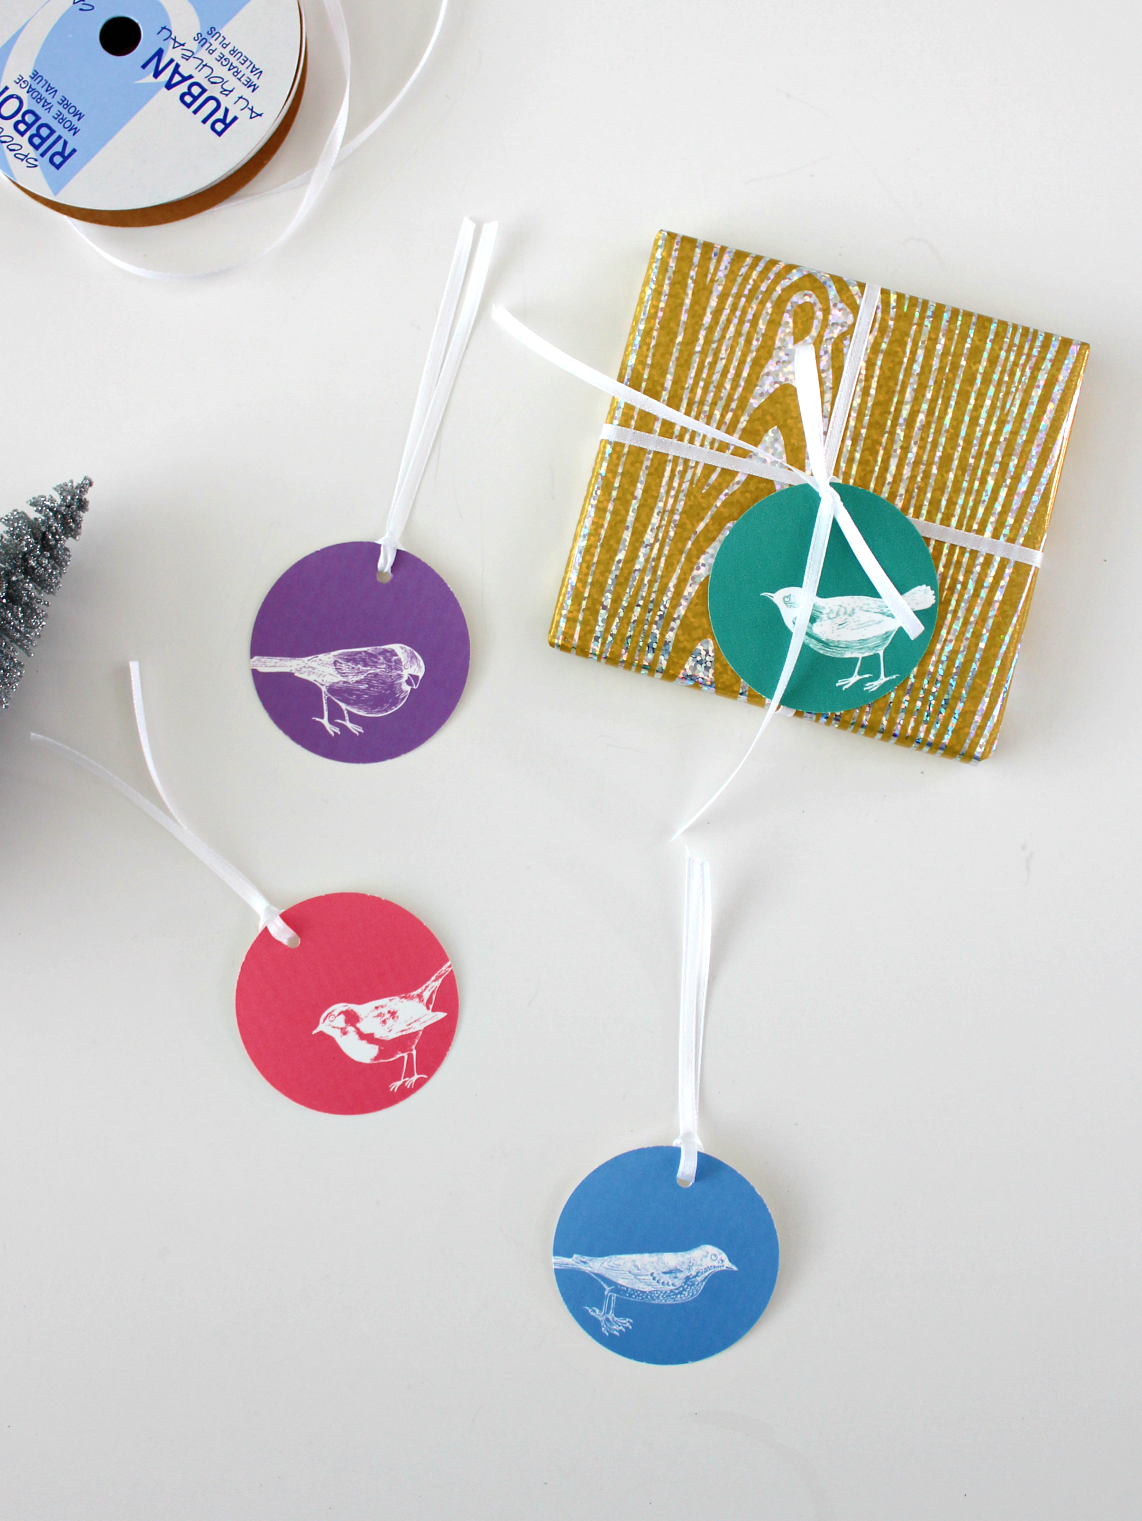 DIY WINTER BIRDS GIFT TAGS WITH PICMONKEY